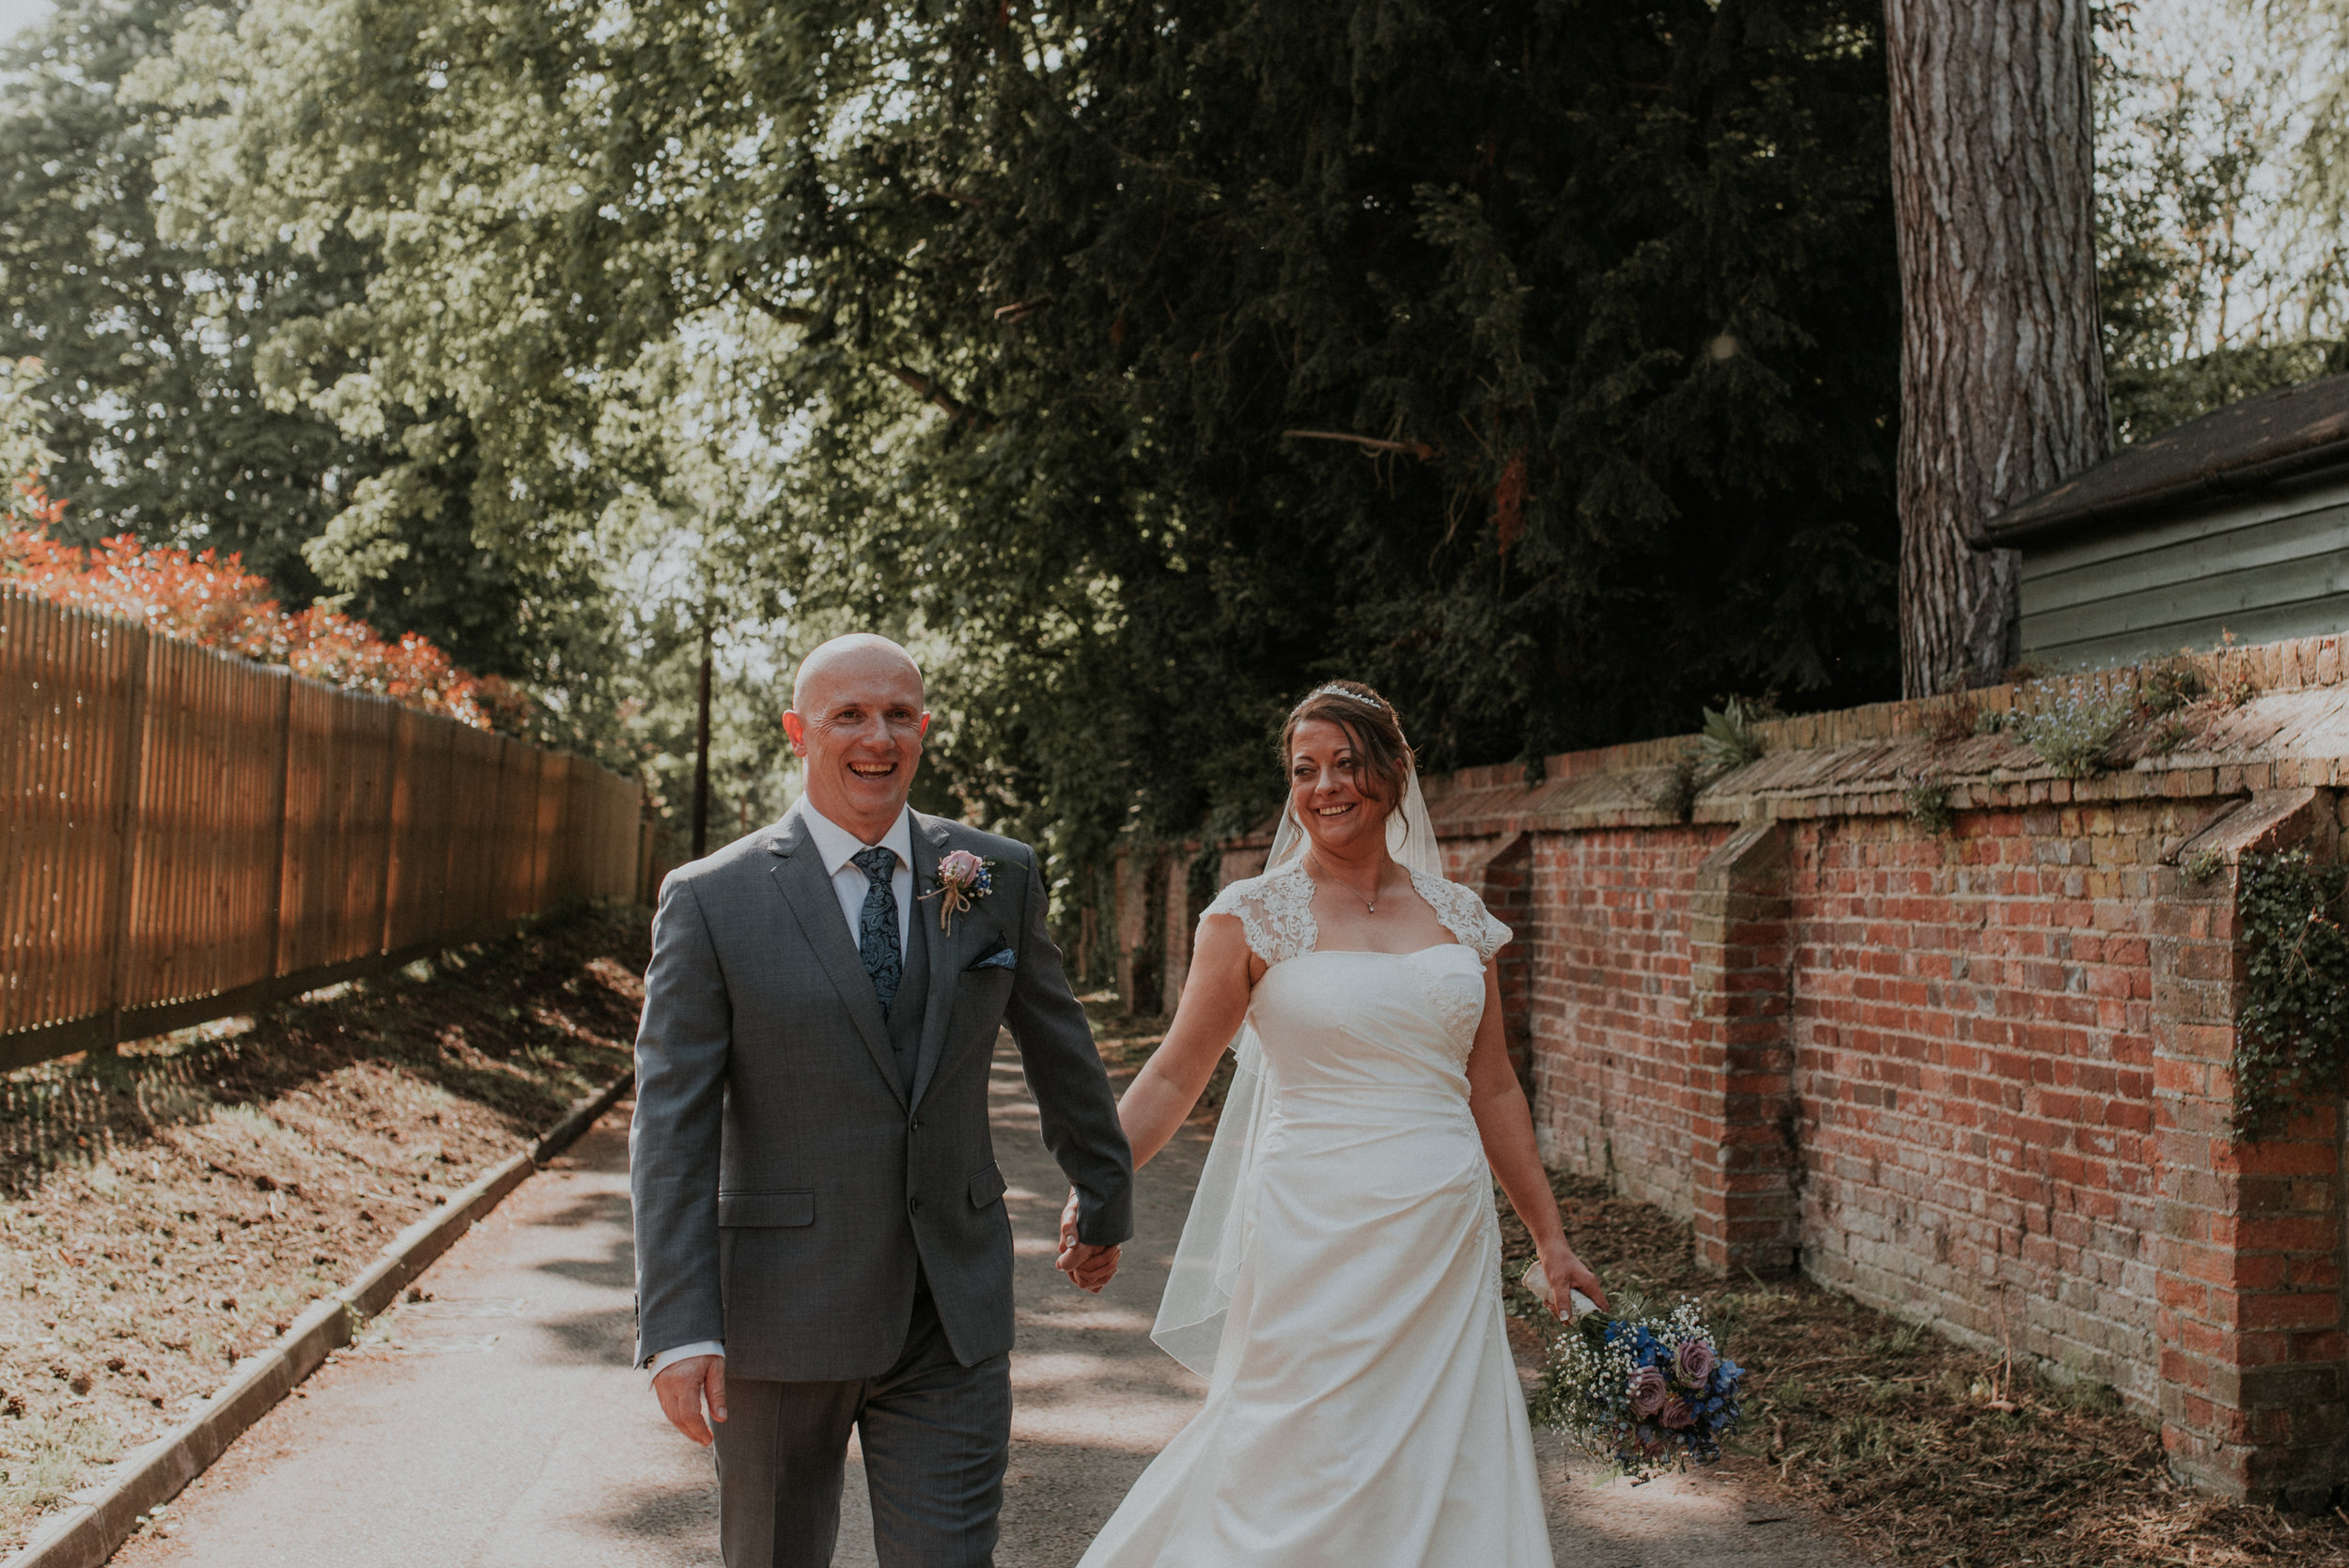 While I was off photographing Andy & Laura's relaxed couples portraits...